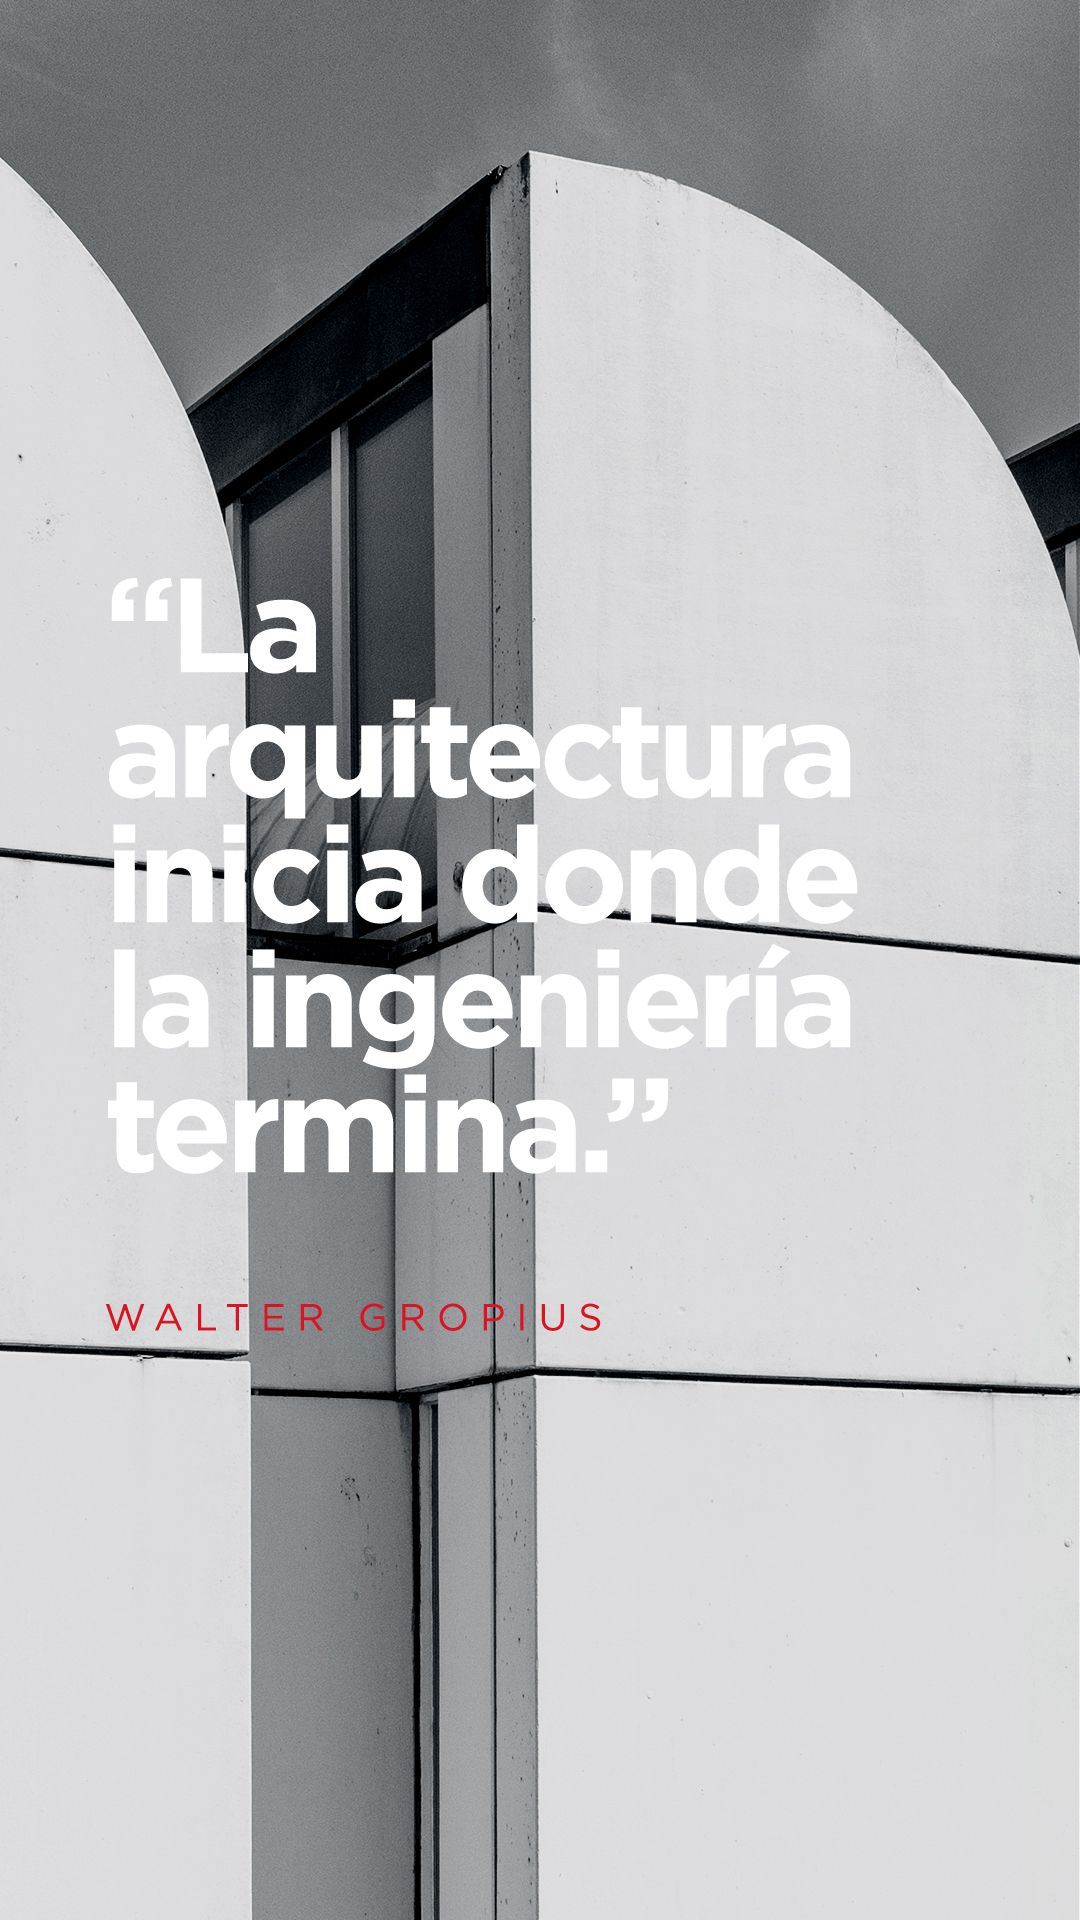 Walter gropius frase quote dise o arquitectura for Requisitos para estudiar arquitectura